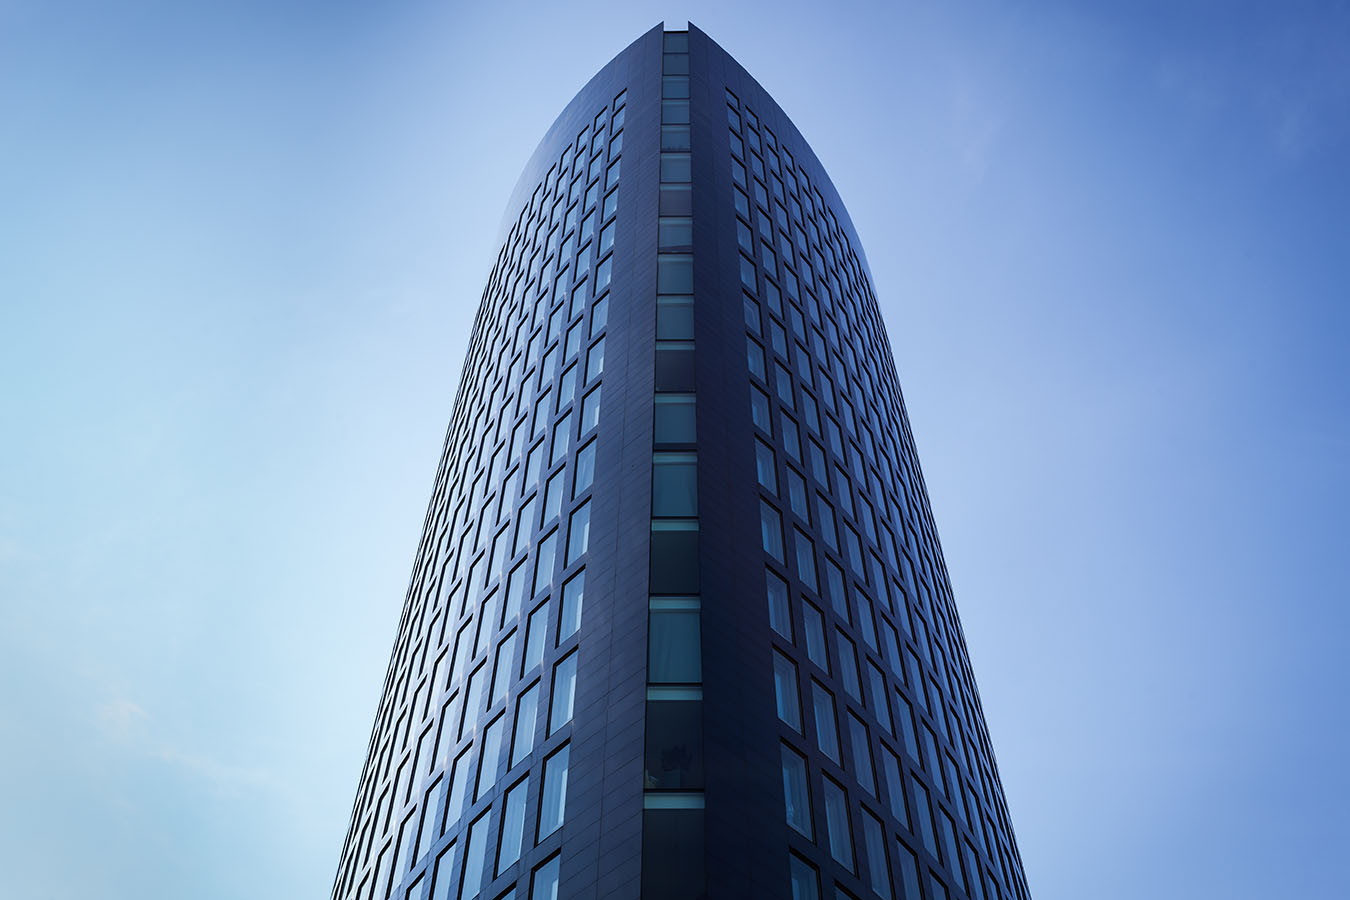 Architekturfotografie: RWE Tower, Dortmund